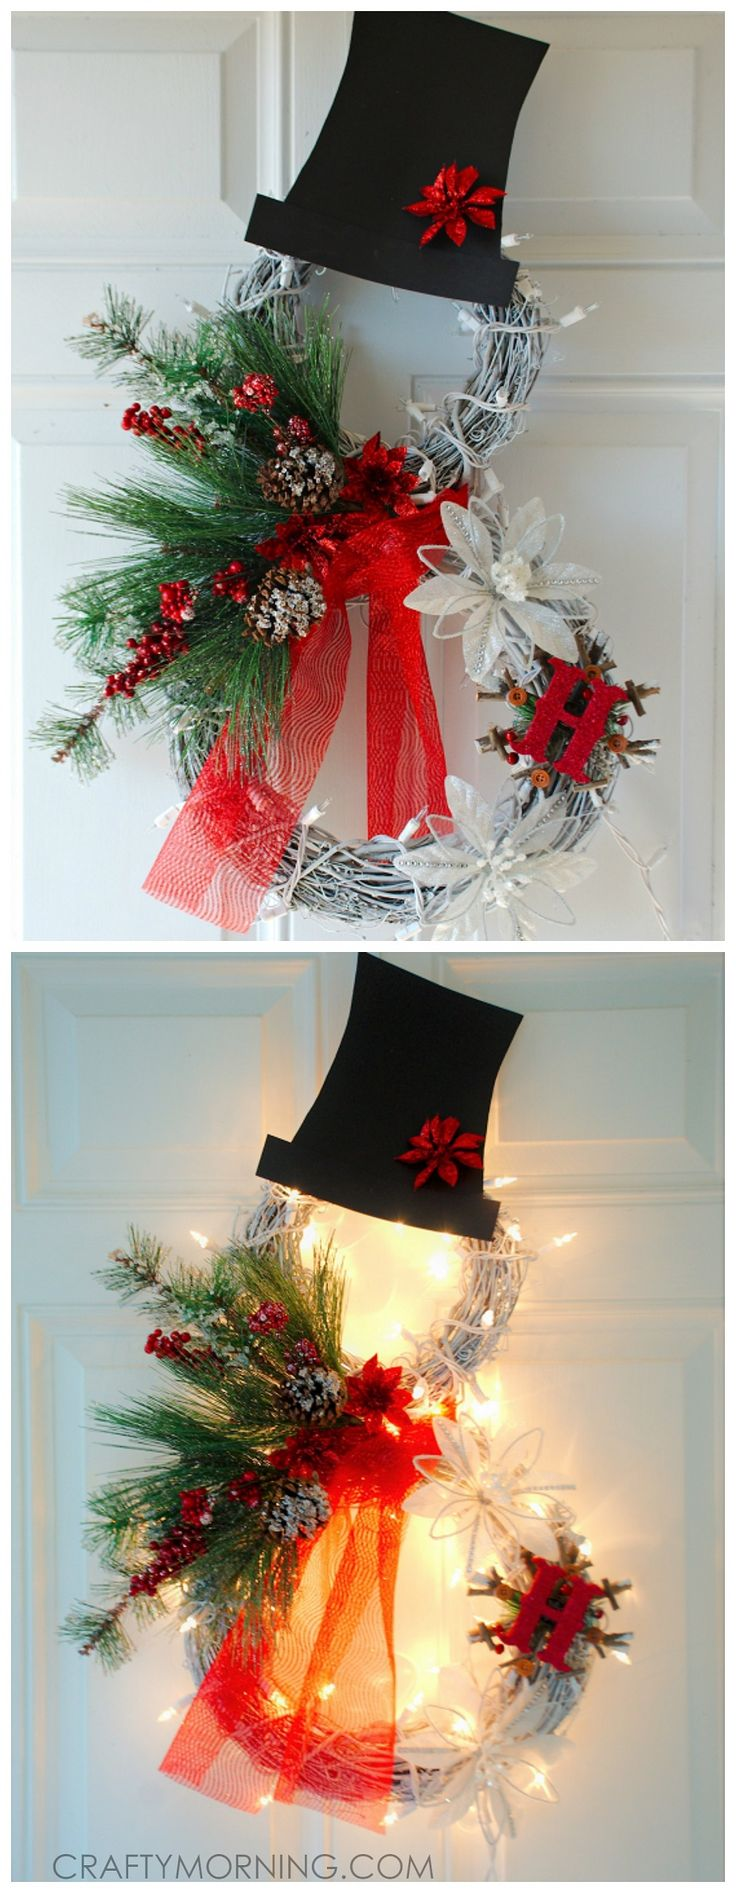 2911 best wreaths images on pinterest christmas wreaths holiday beautiful lighted grapevine snowman wreath to make for a christmas door decoration christmas diycrafts solutioingenieria Gallery